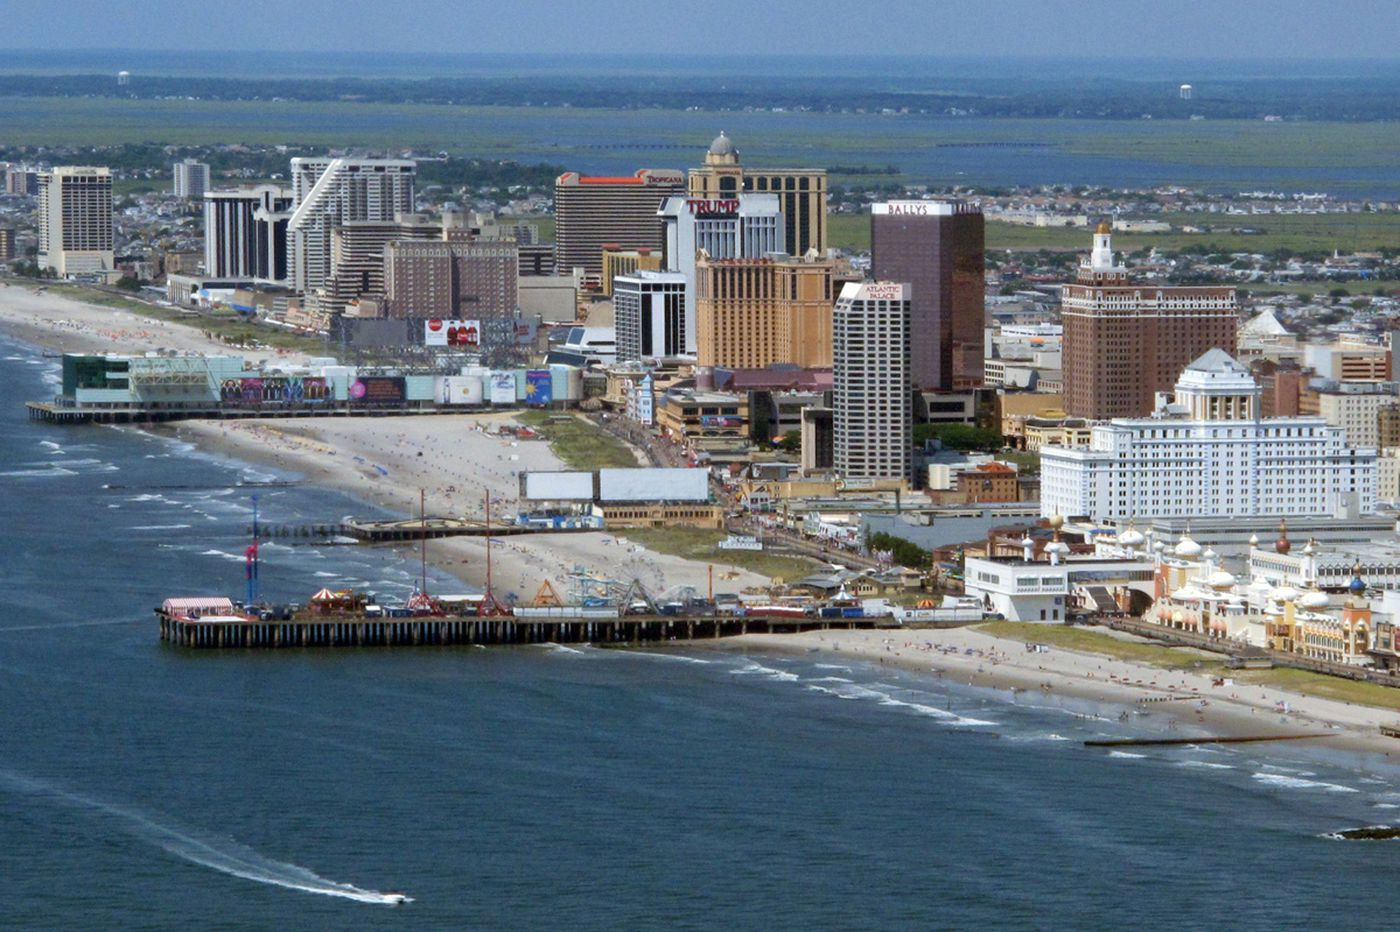 Sweeney proposes to allow 2 North Jersey casinos